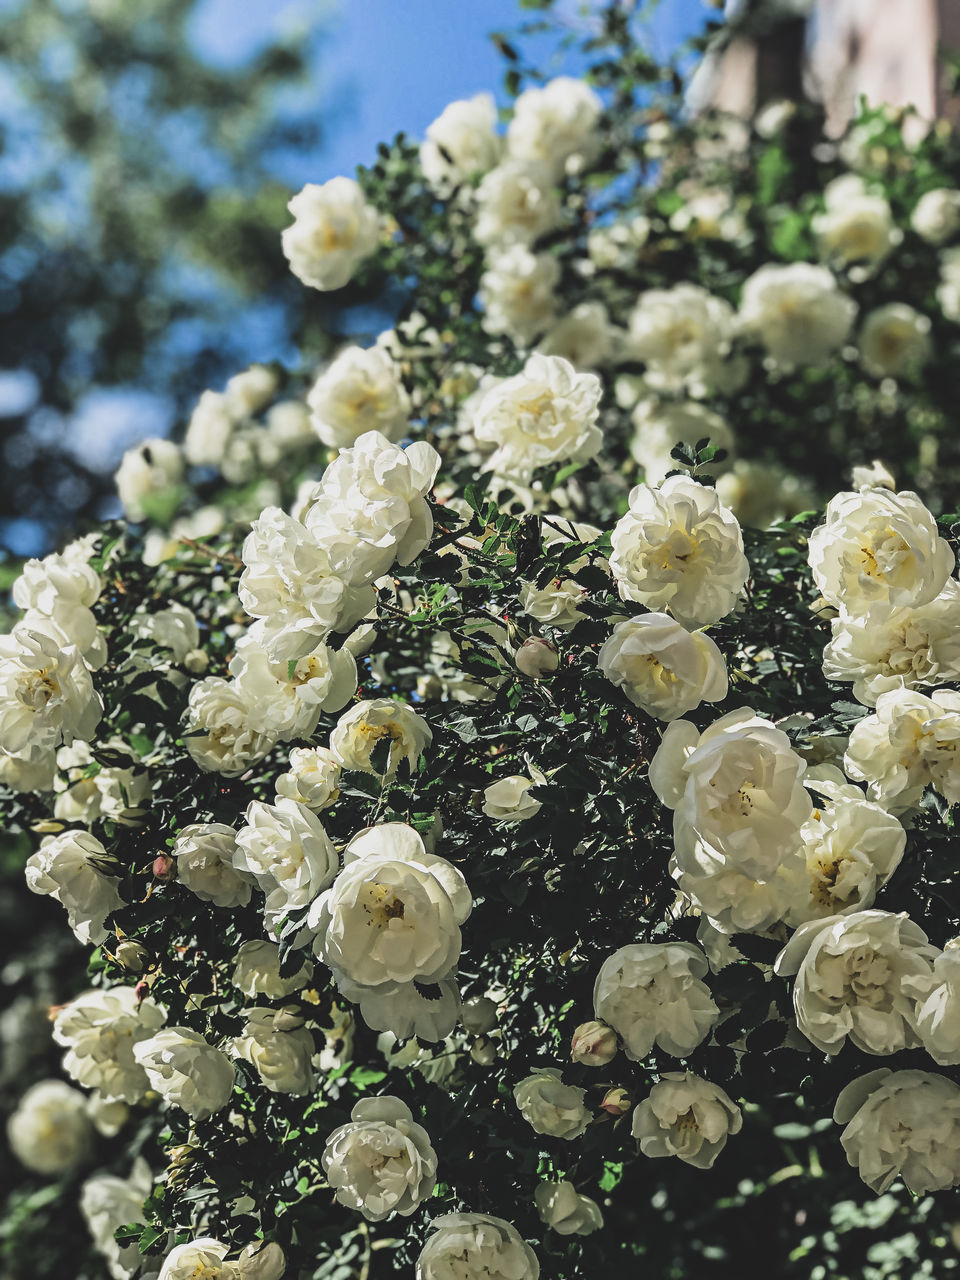 CLOSE-UP OF WHITE ROSE FLOWERS